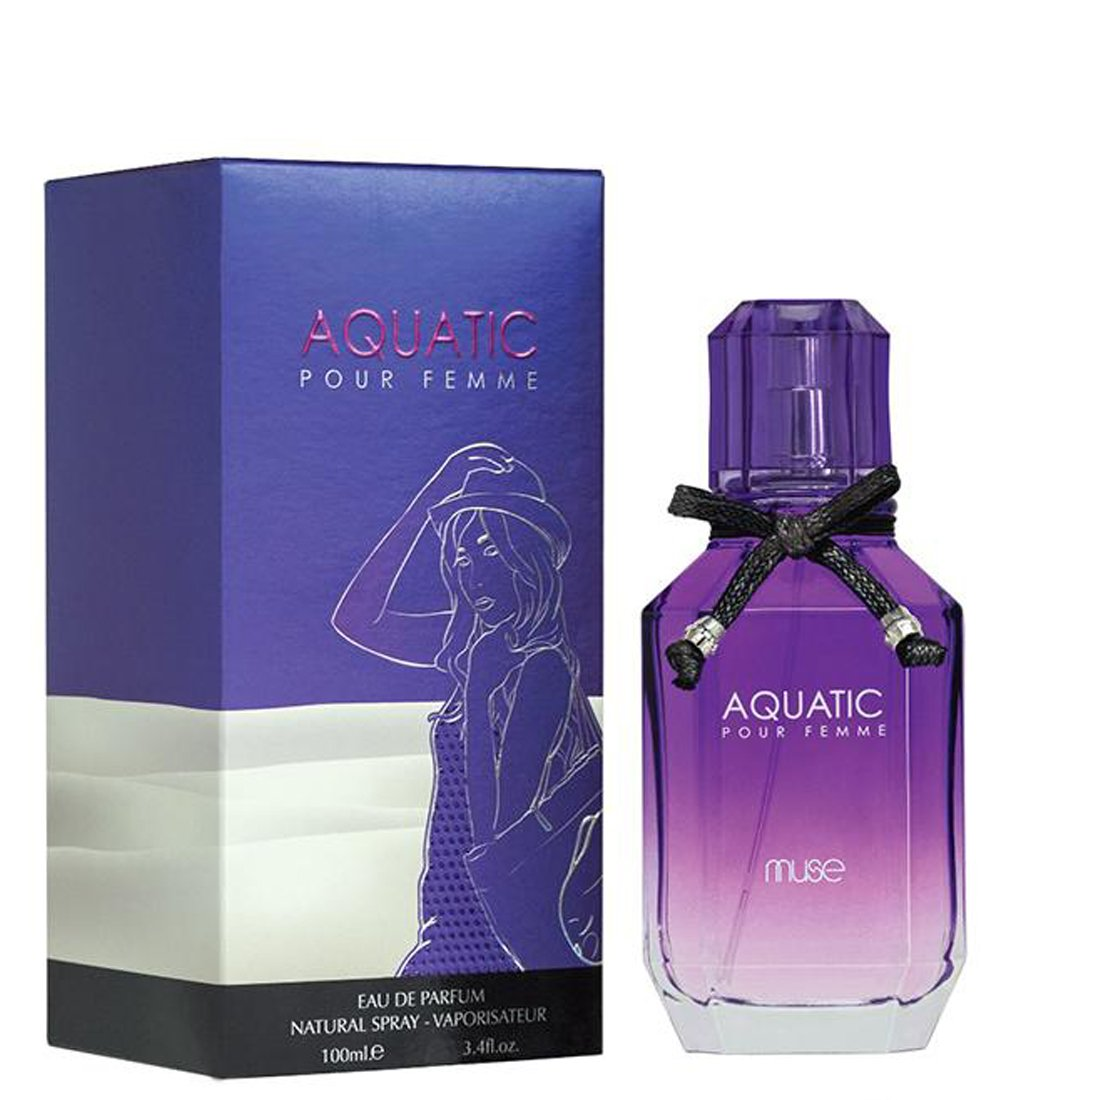 Lamuse Aquatic Pour Femme Perfume Spray - 100ml